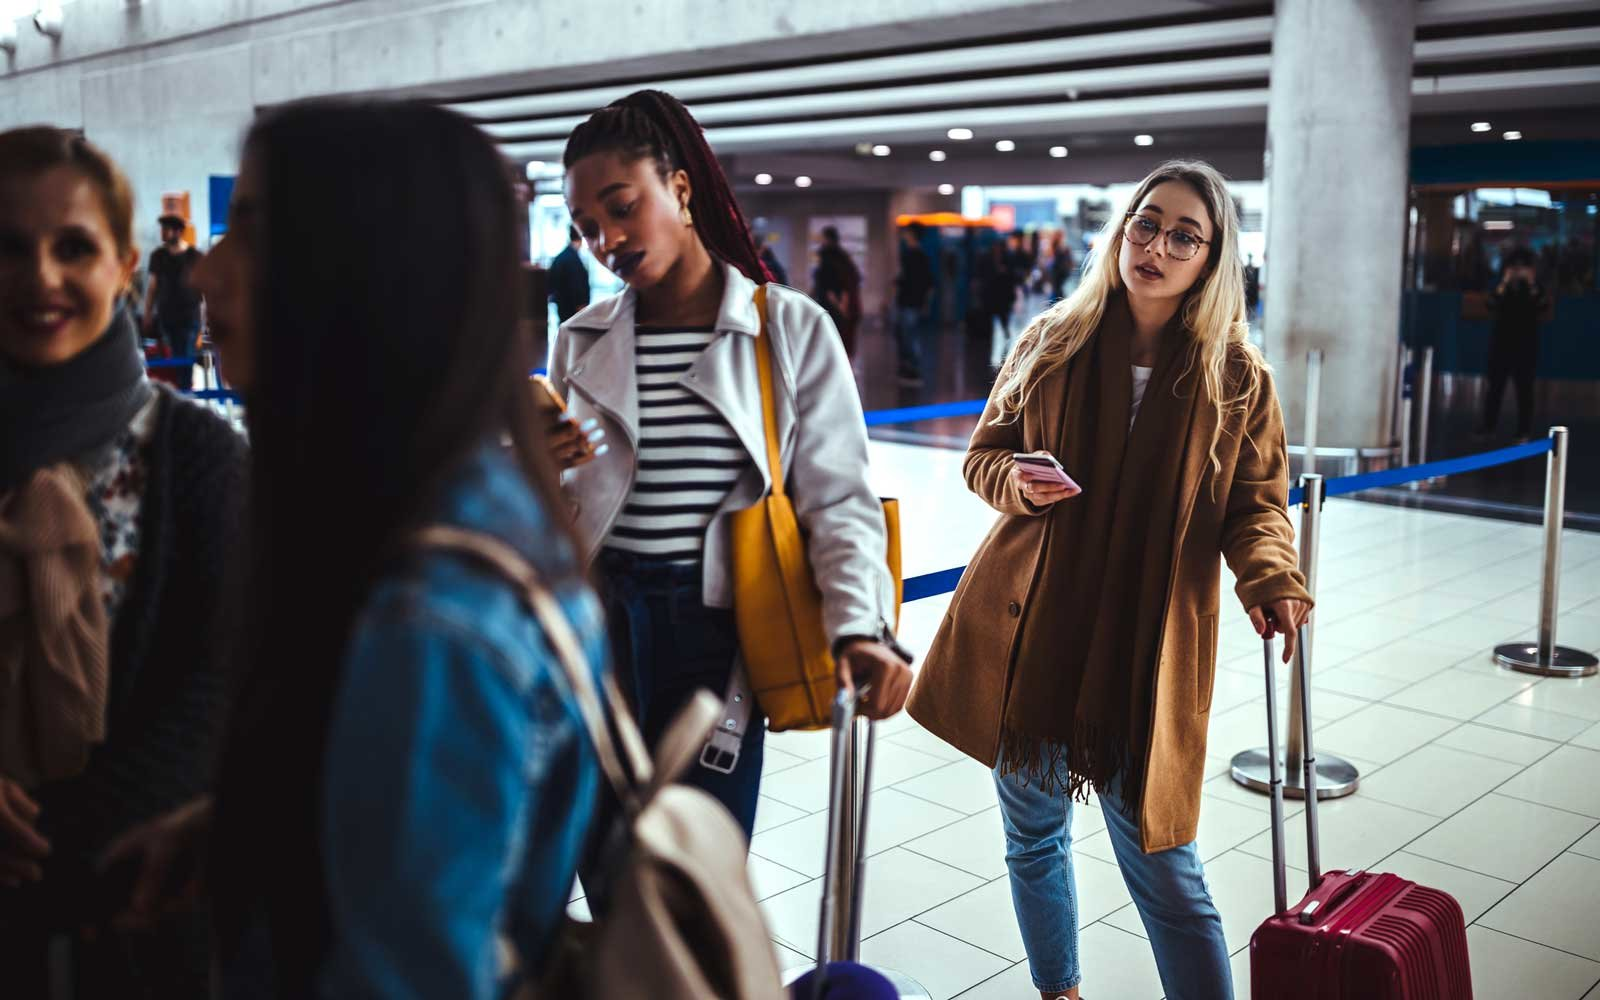 This is the most common airport anxiety, according to new survey